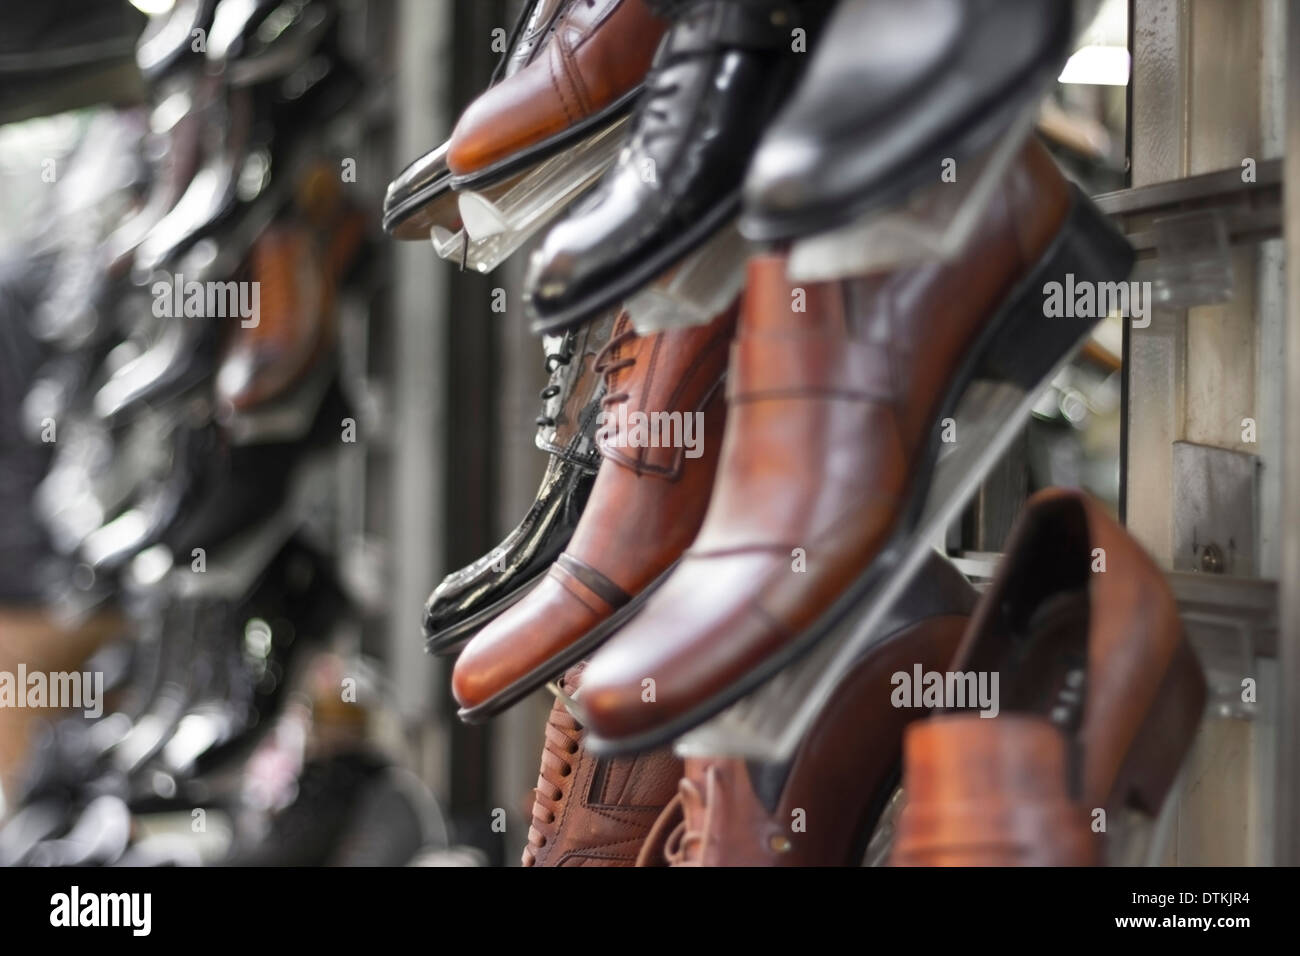 Closeup of a row of mens shoes in a mens clothing store. - Stock Image